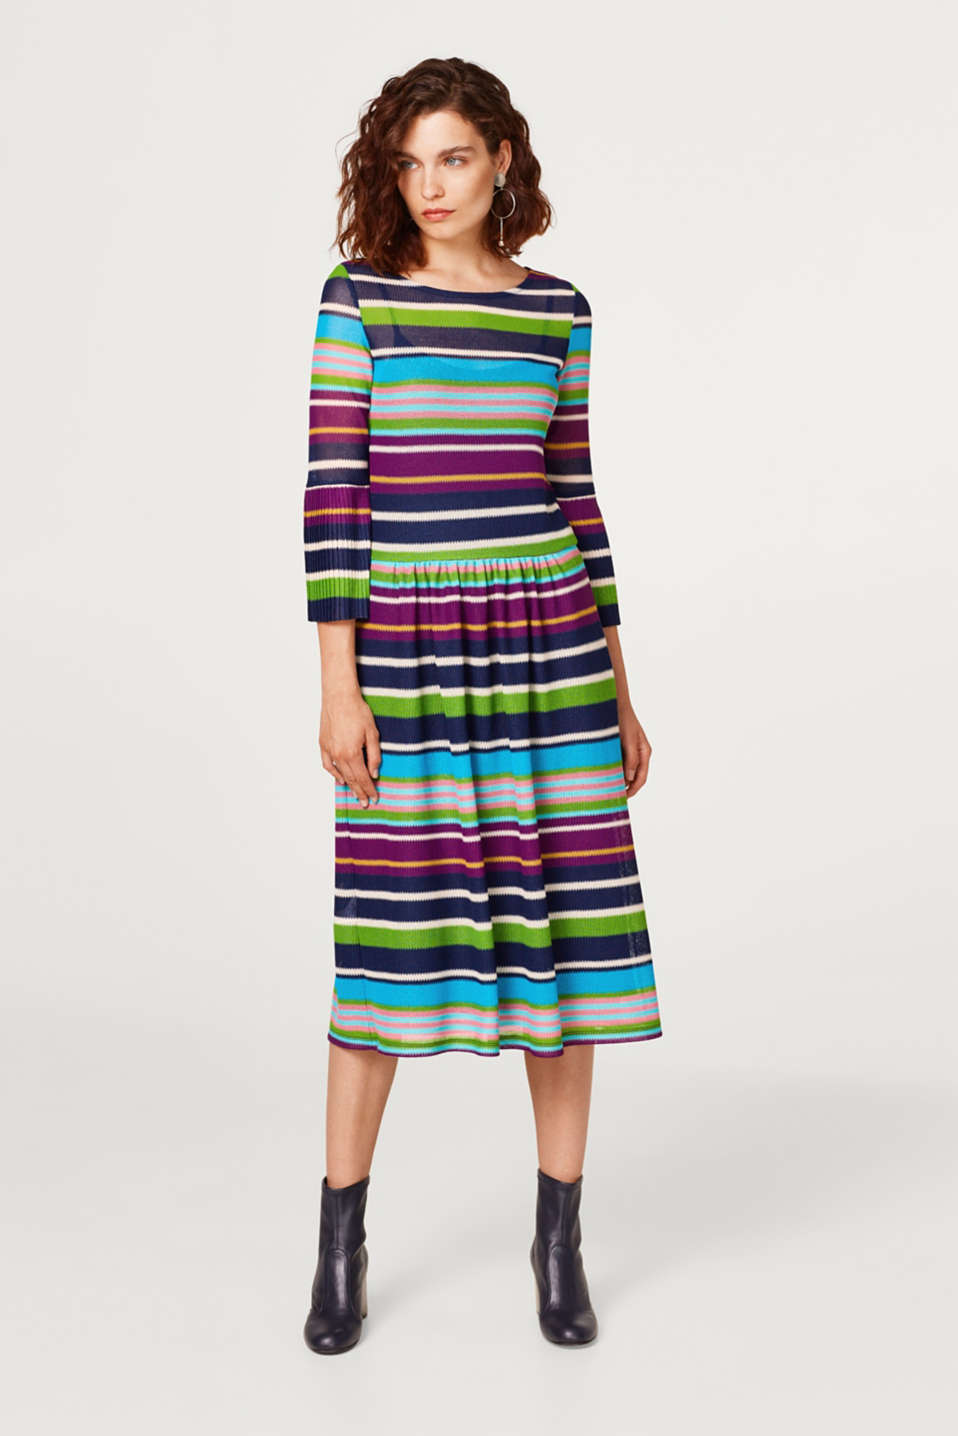 Midi dress made of mesh with multi-coloured stripes